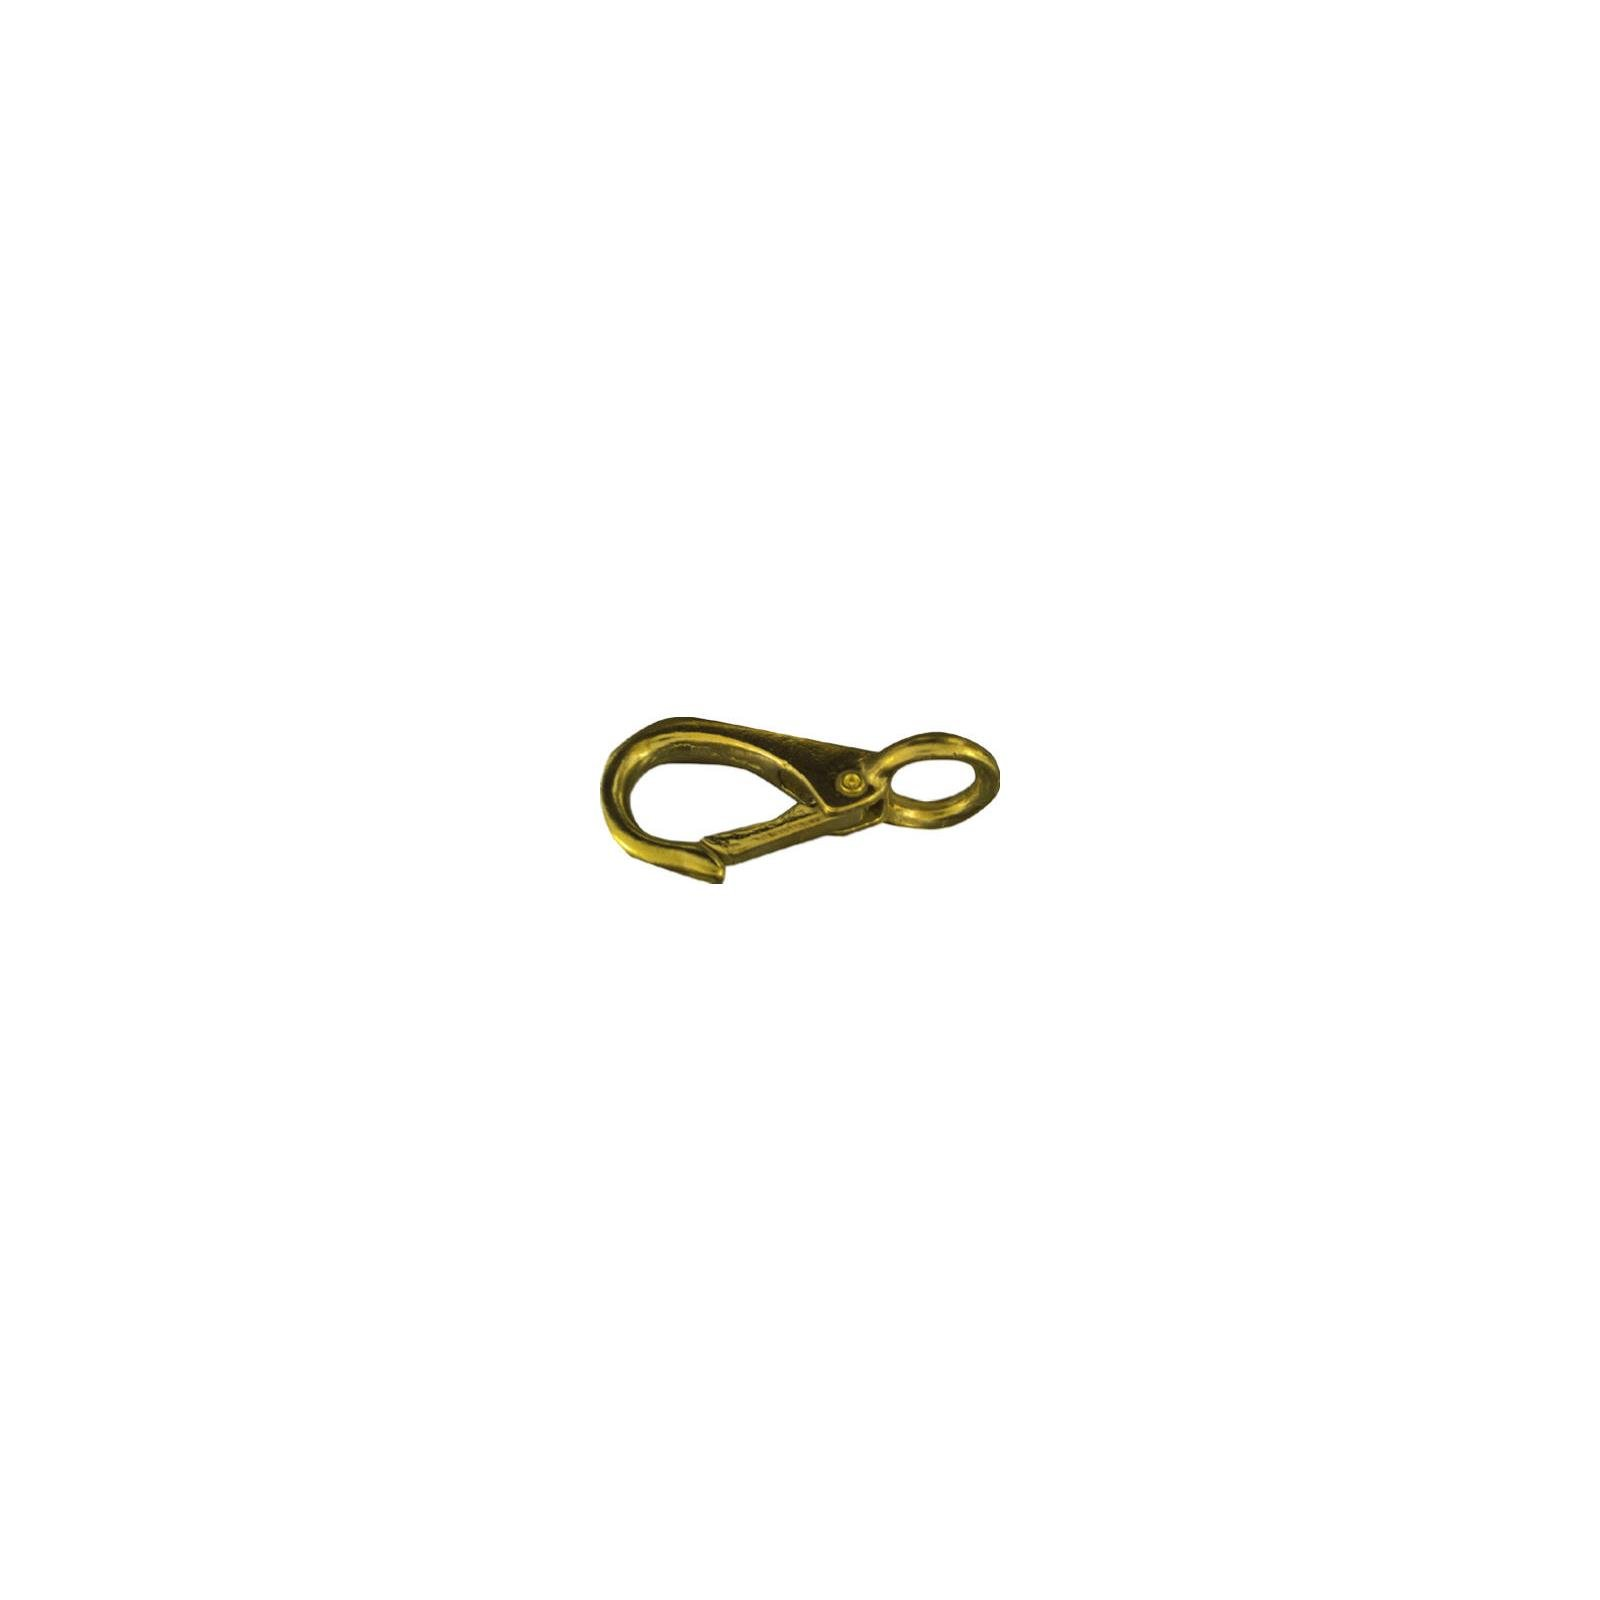 Boat Snaps Round Fixed Eye (3/4'' x 3-13/16'') -Solid bronze - Qty 5